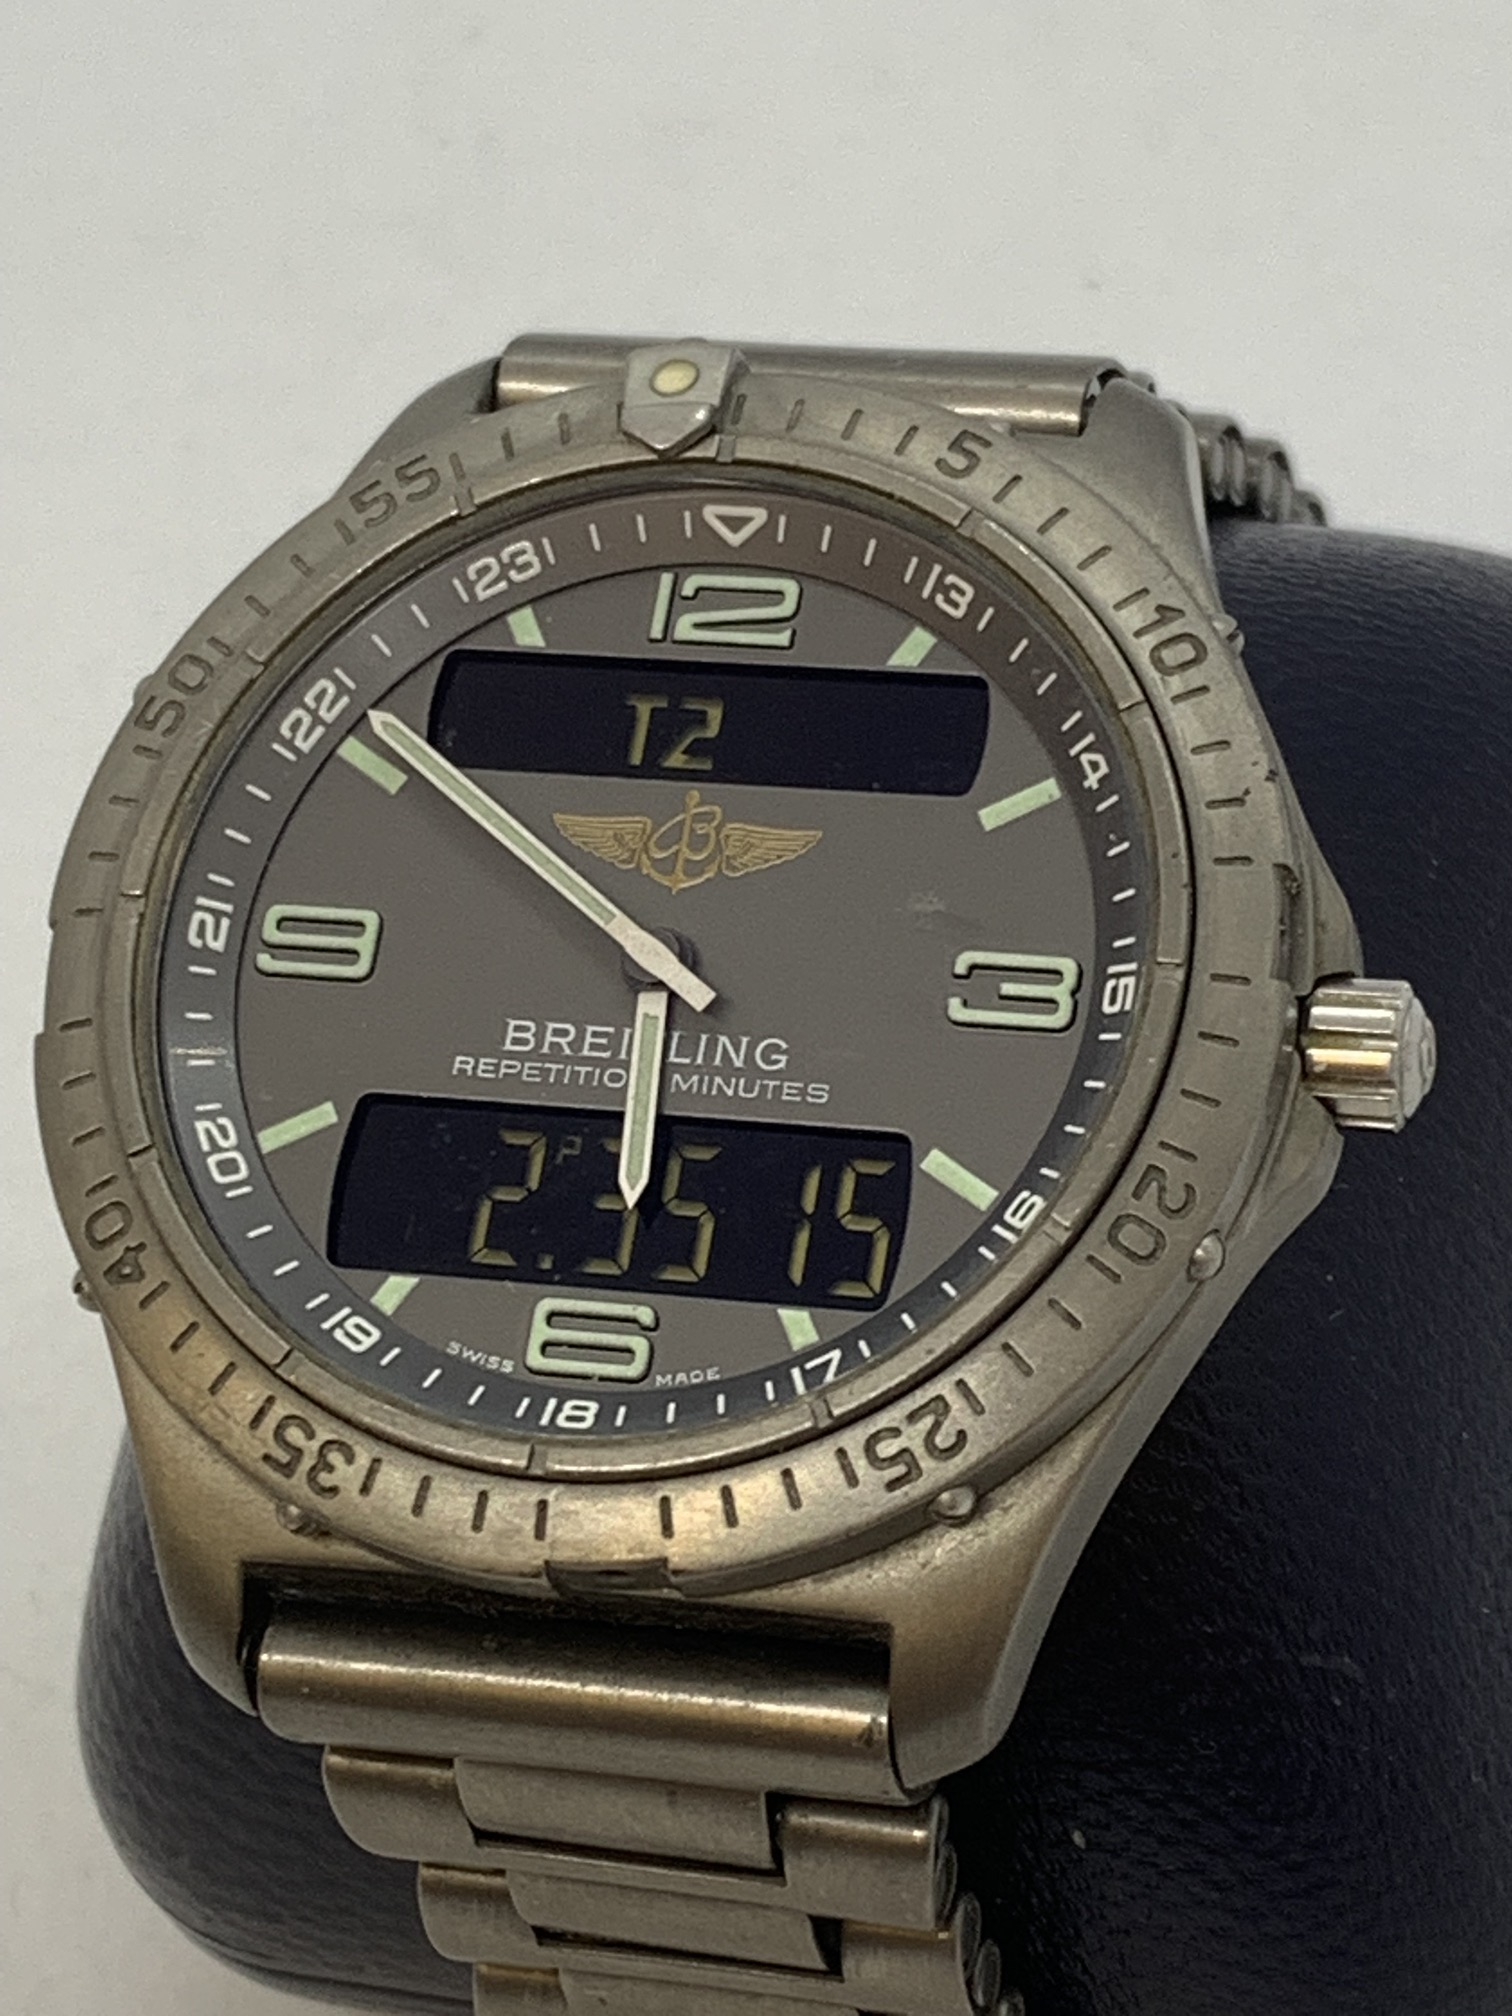 BREITLING TITANIUM WATCH A/F - Image 5 of 15